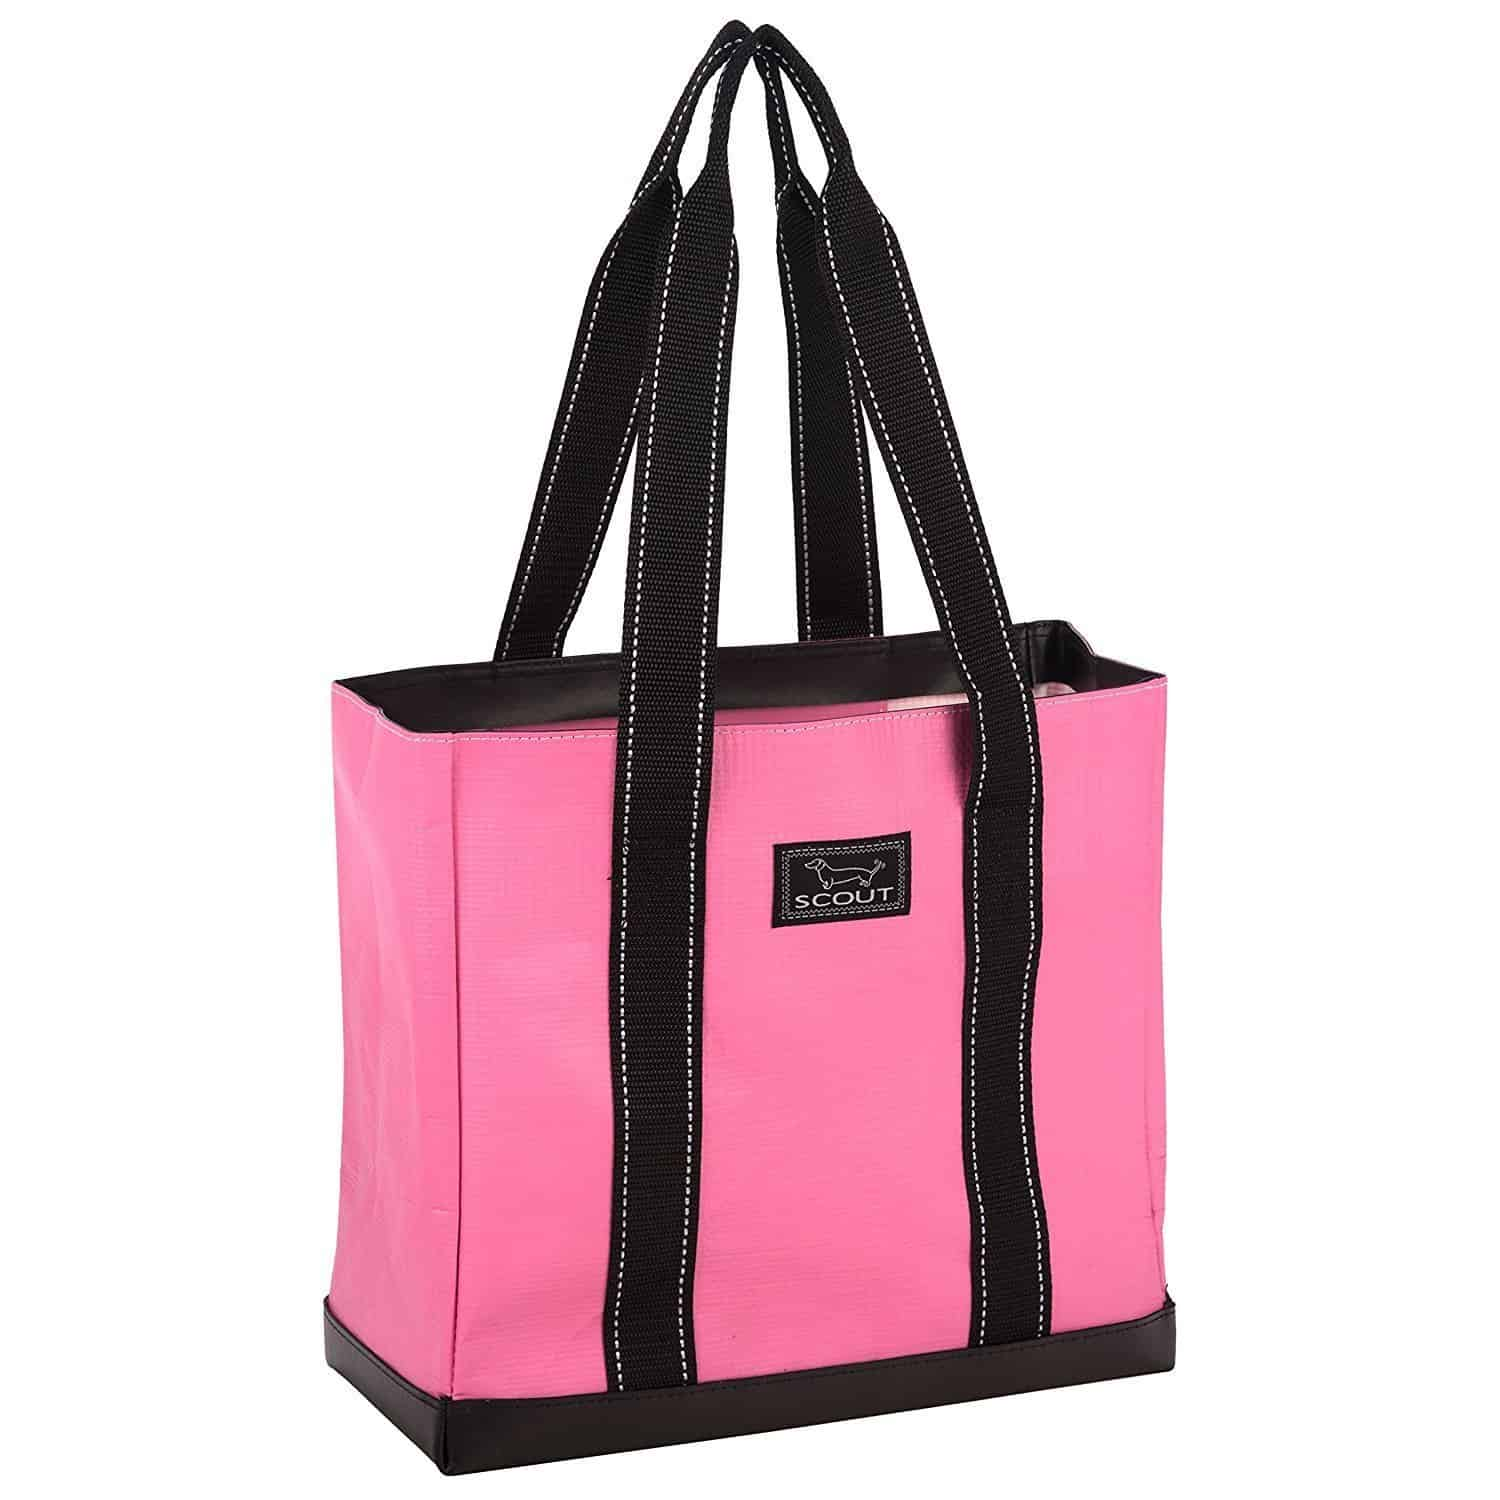 Scout Mini Deano Small Tote Bag Pink Lemondade